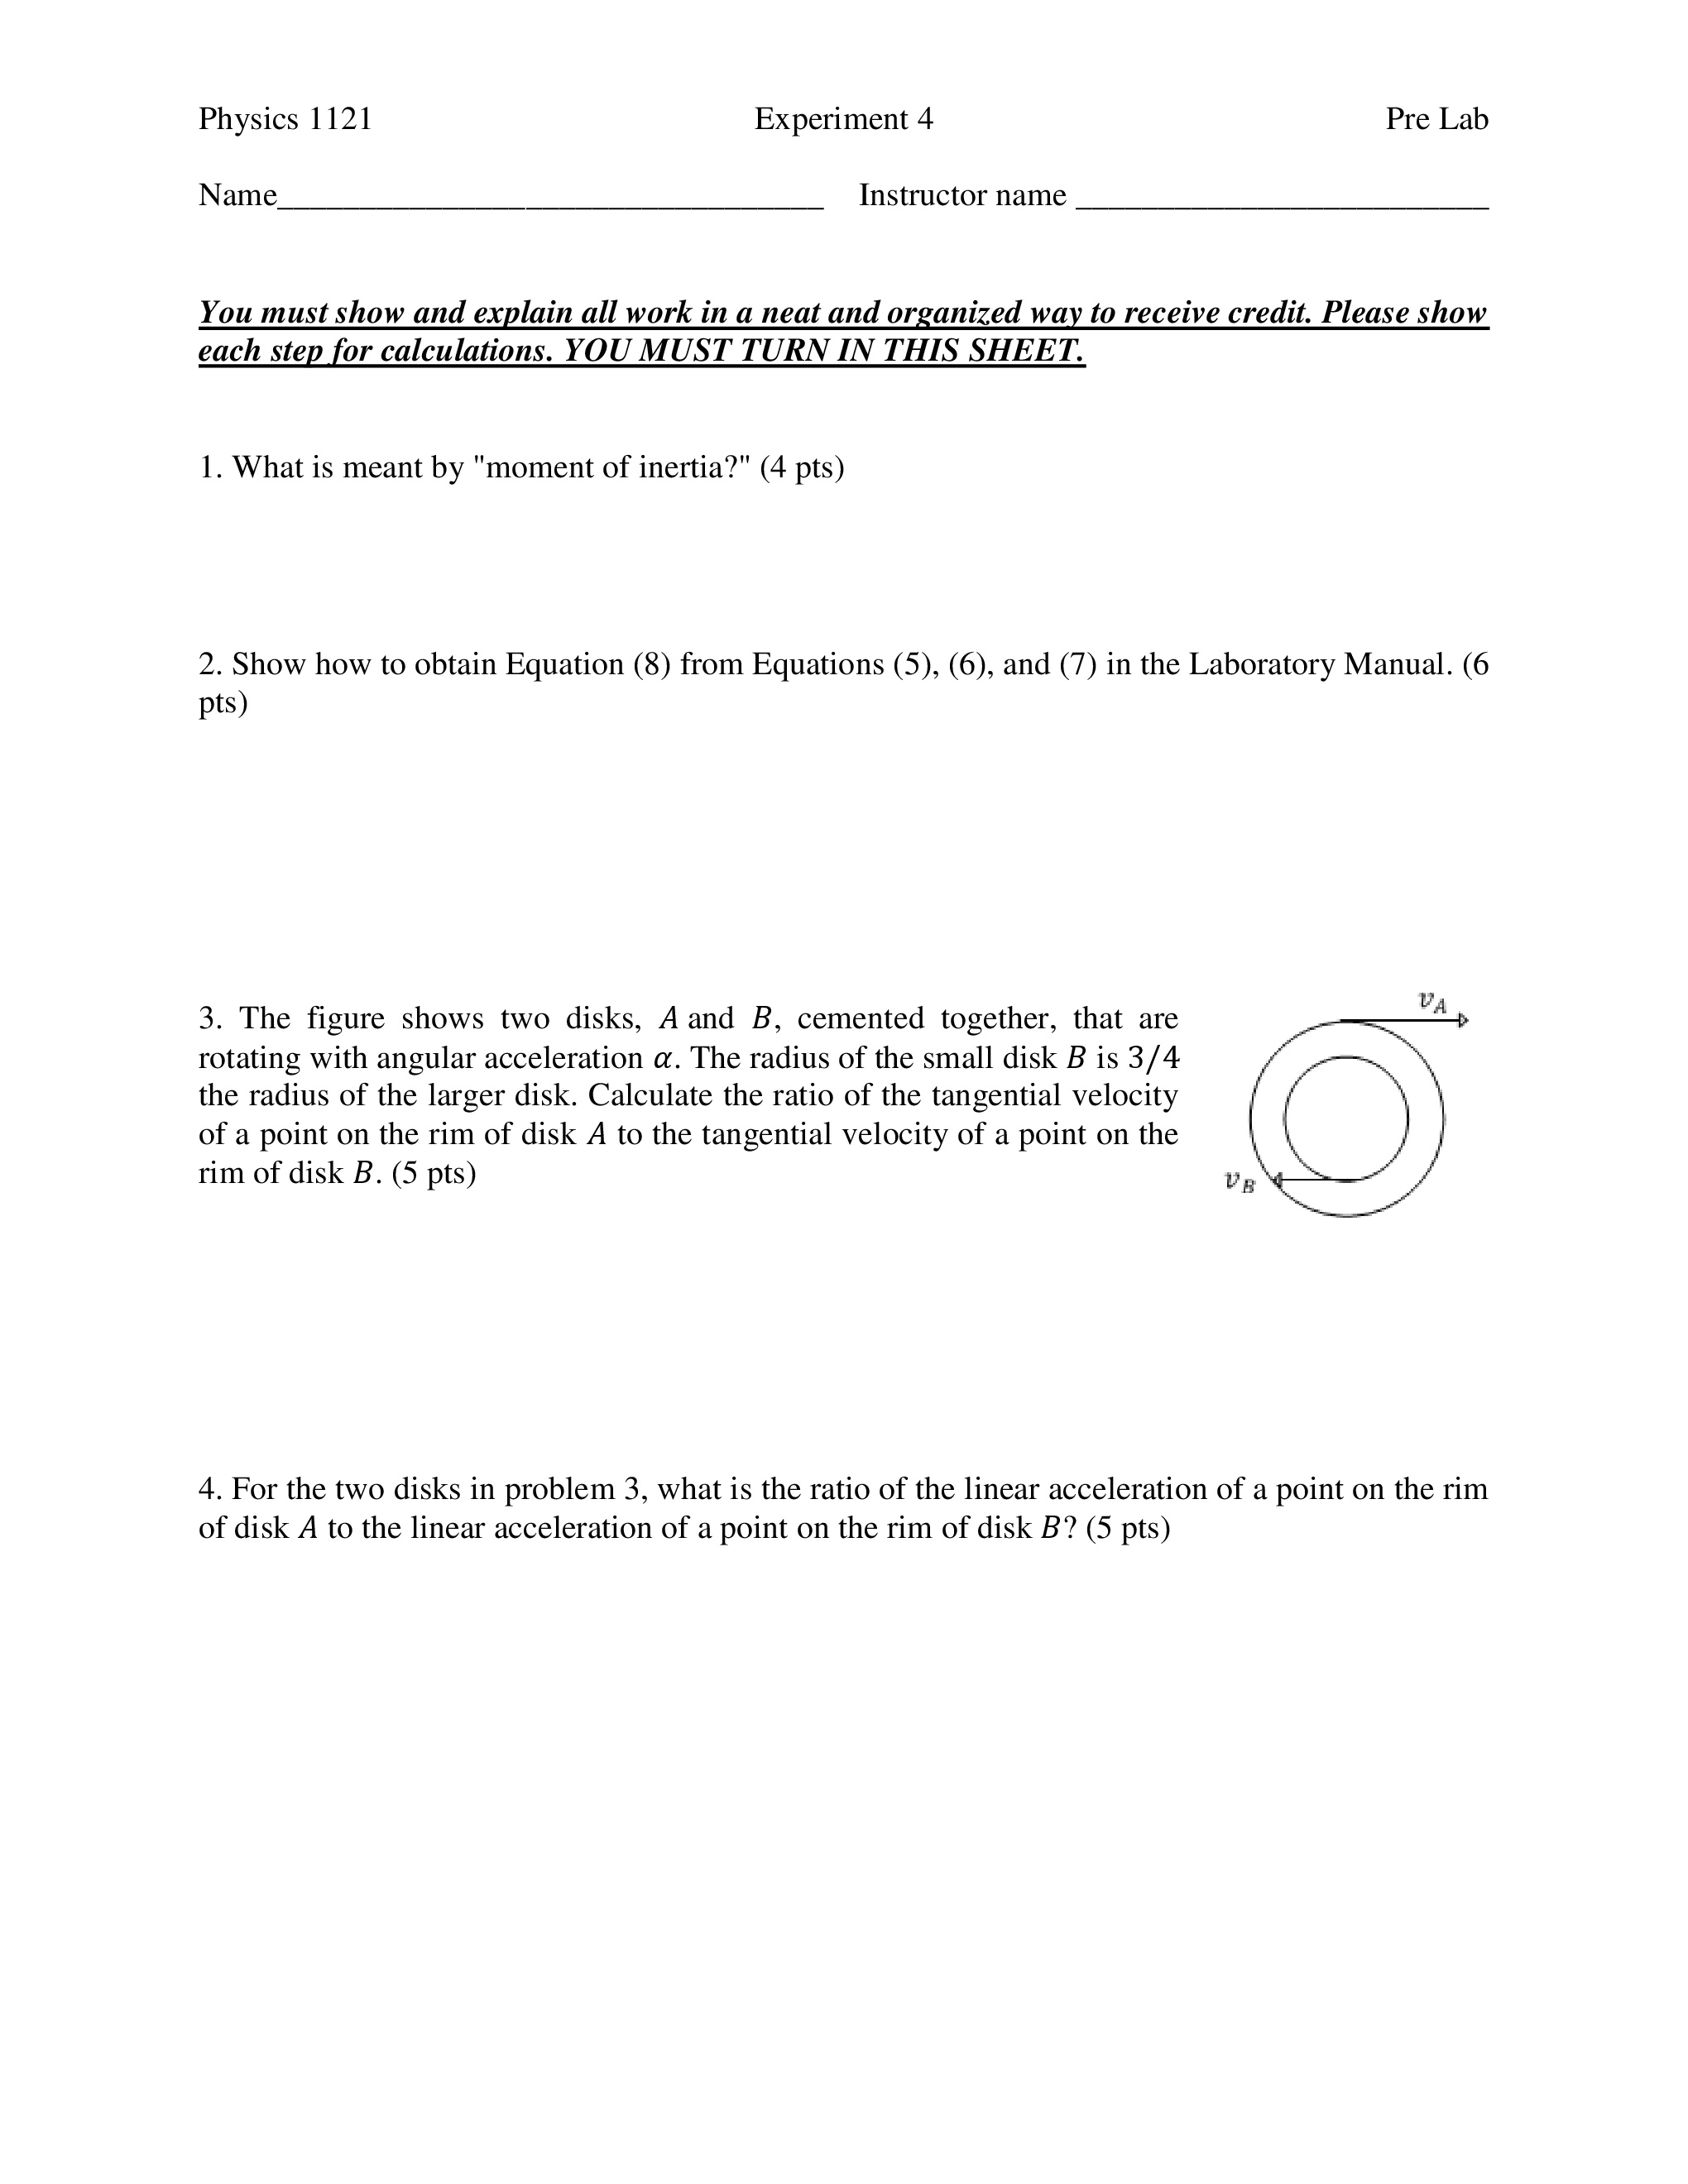 """Physics 1121 Experiment 4 Pre Lab Name Instructor name You must show and explain all work in a neat and organized way to receive credit. Please show each step for calculations. YOU MUST TURN IN THIS SHEET. 1. What is meant by """"moment of inertia?"""" (4 pts) 2. Show how to obtain Equation (8) from Equations (5), (6), and (7) in the Laboratory Manual. (6 pts) LV 3. The figure shows two disks, A and B, cemented together, that are rotating with angular acceleration α. The radius of the small disk B is 3/4 the radius of the larger disk. Calculate the ratio of the tangential velocity of a point on the rim of disk A to the tangential velocity of a point on the rim of disk B. (5 pts) LV 4. For the two disks in problem 3, what is the ratio of the linear acceleration of a point on the rim of disk A to the linear acceleration of a point on the rim of disk B? (5 pts)"""